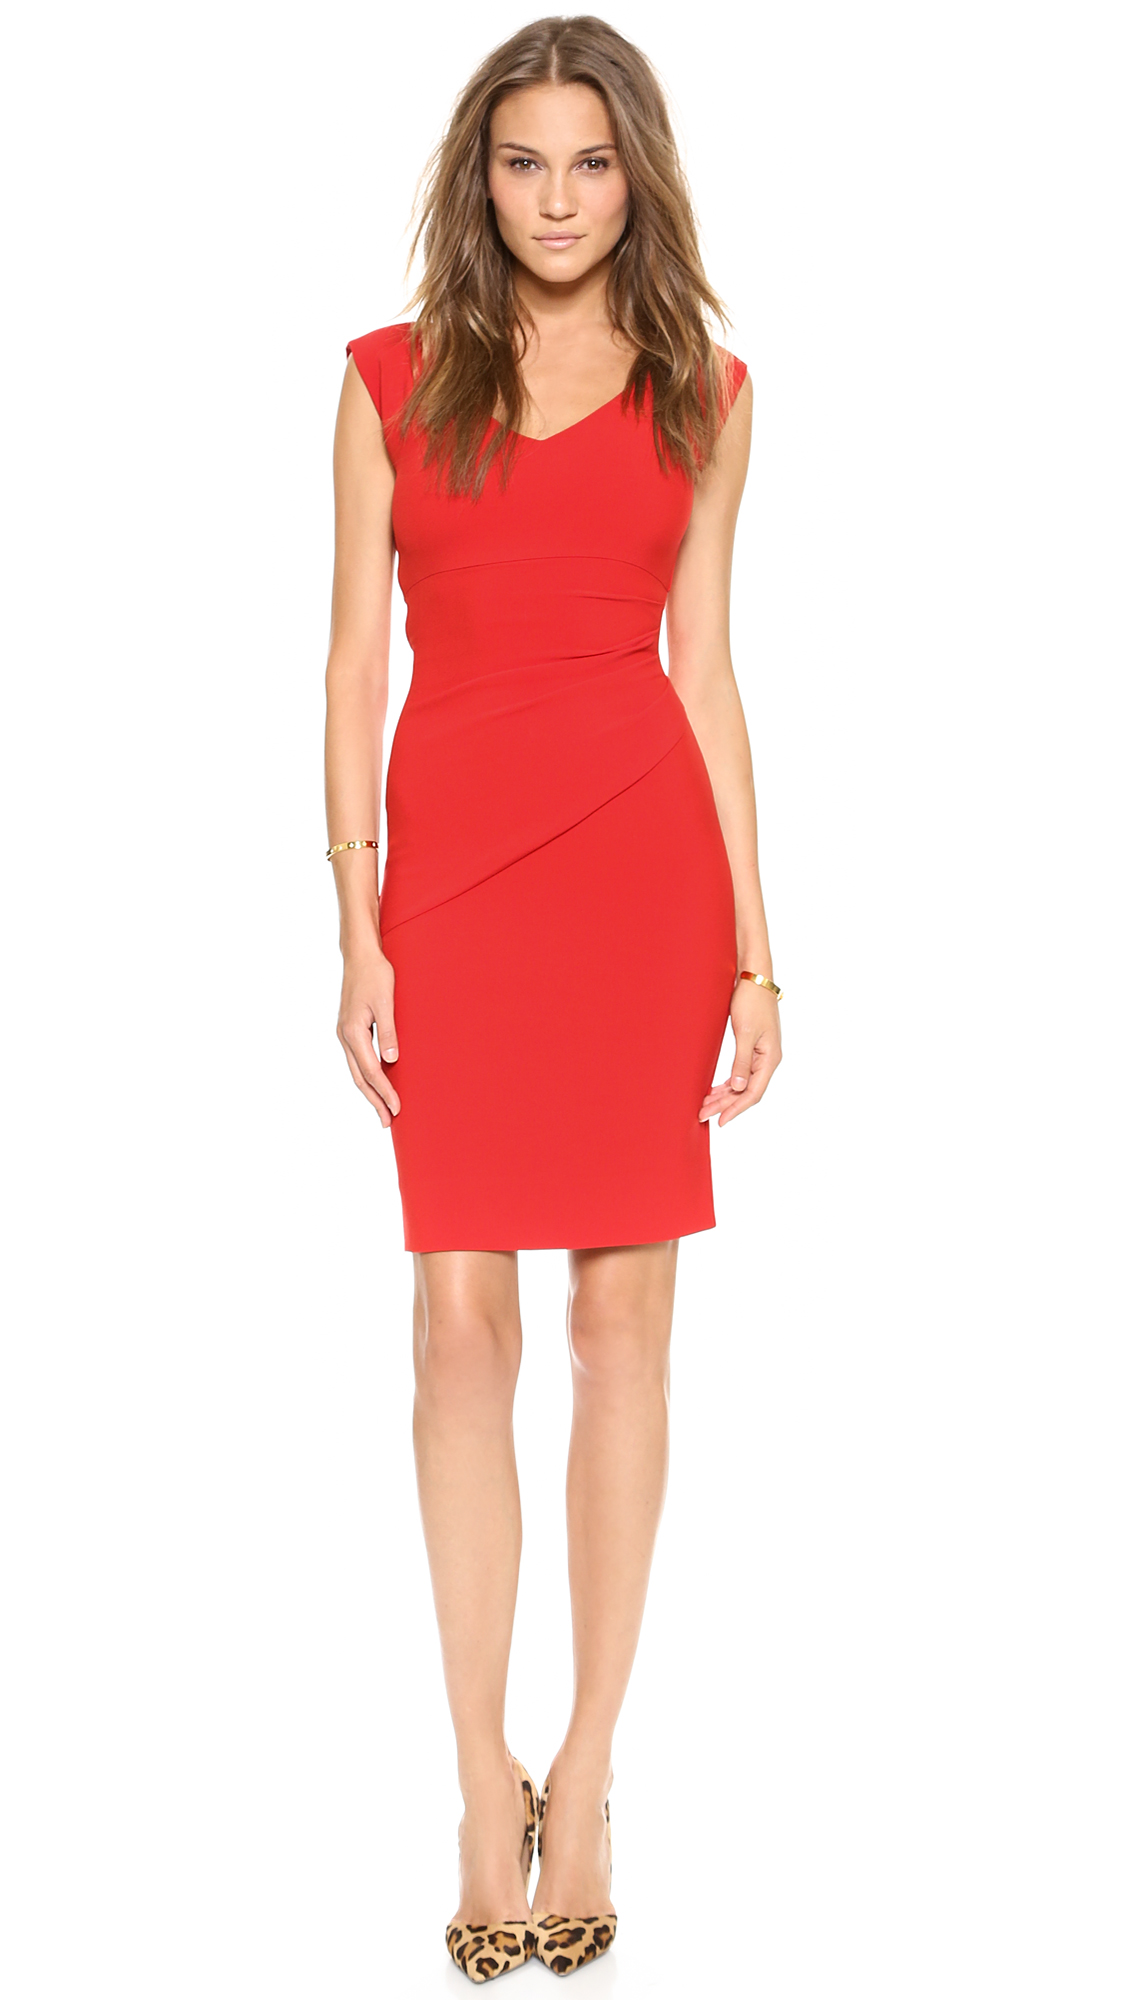 Pippa Middleton\u0027s dress enters The British Heart Foundation ...